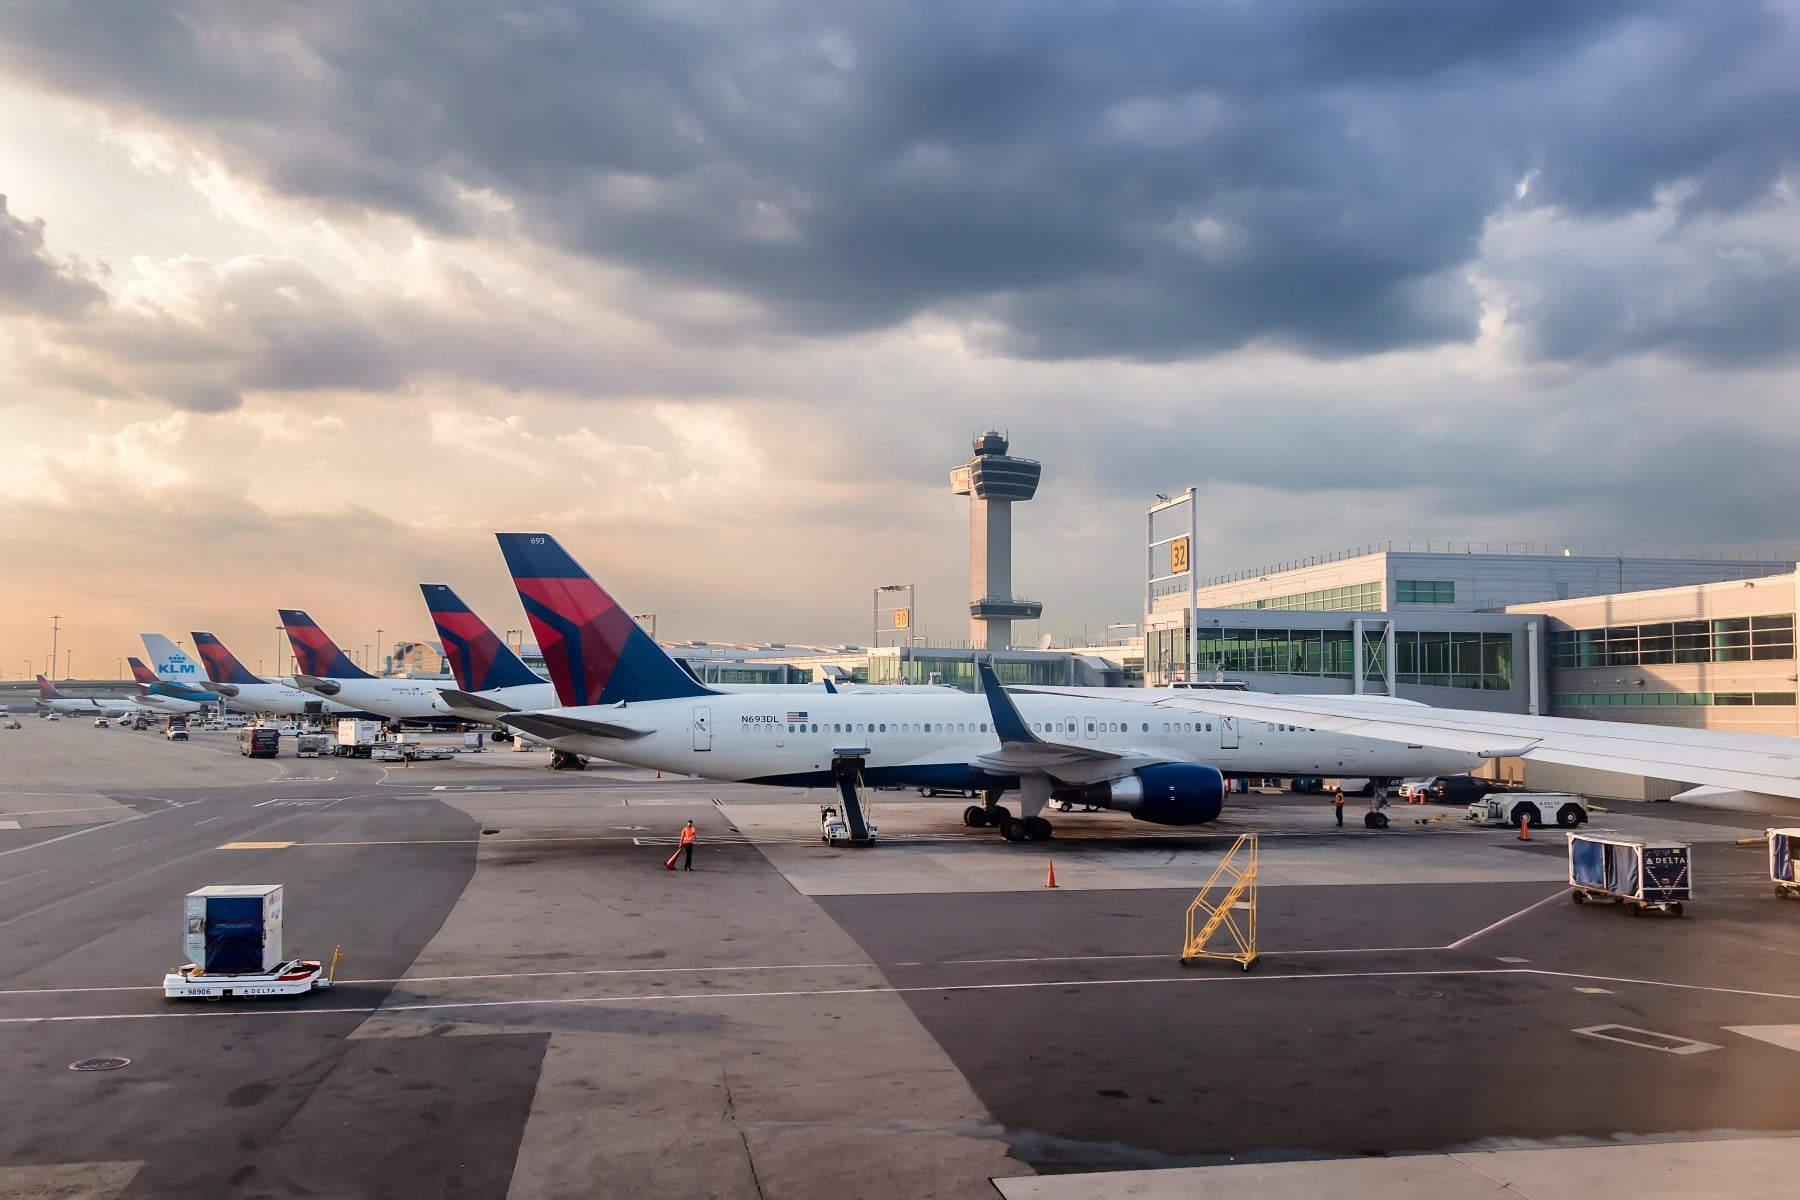 Is the Delta SkyMiles Gold Business card annual fee worth it?